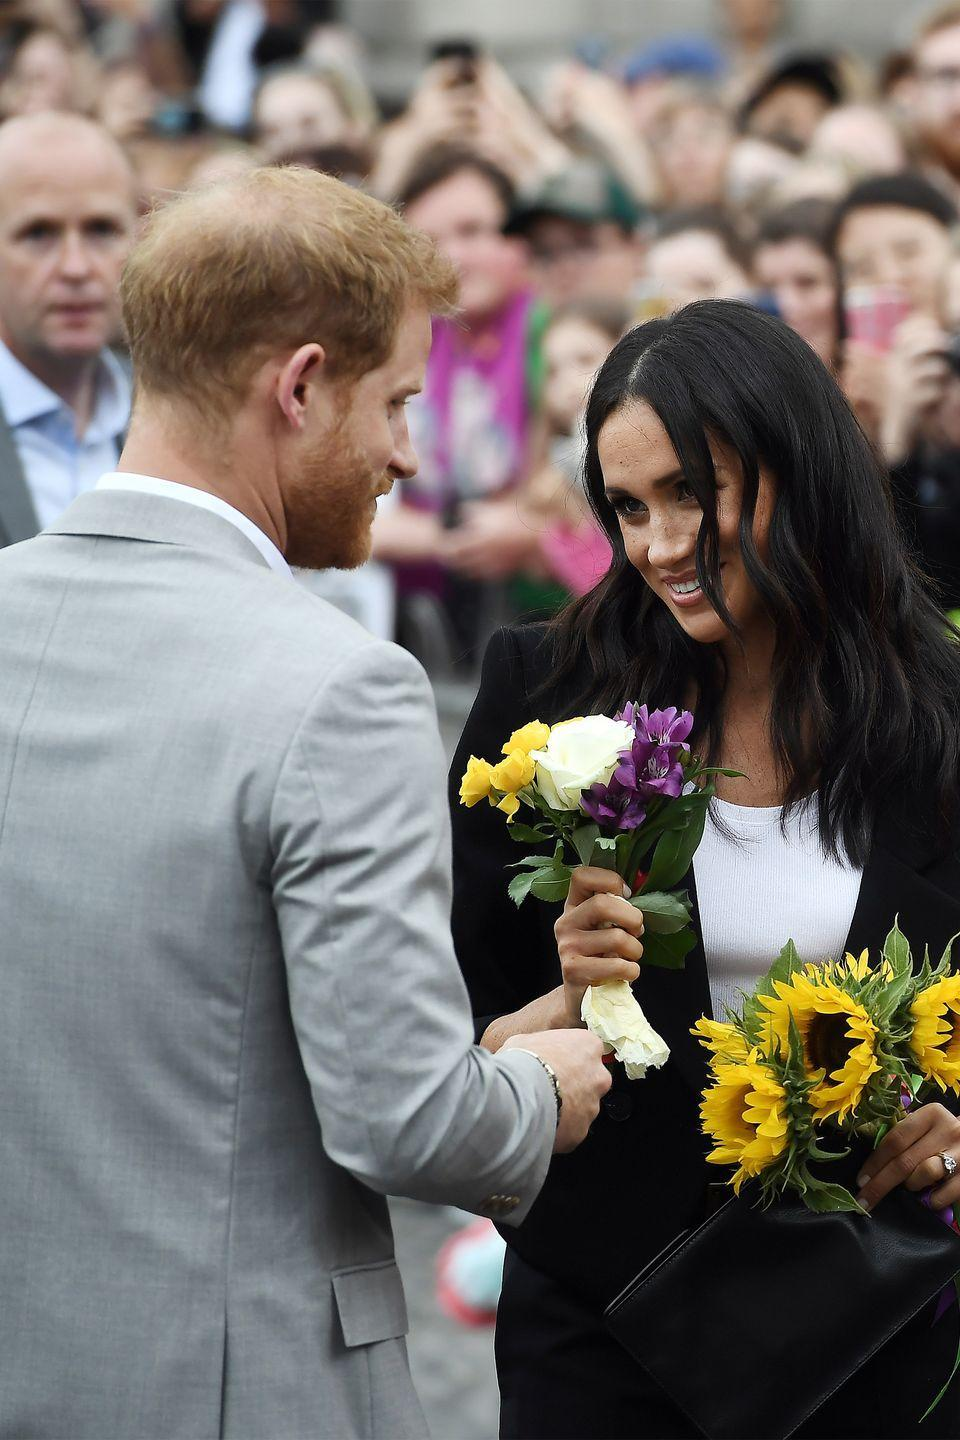 <p>On an official royal visit to Ireland, Harry and Meghan had a sweet moment at Trinity College. </p>